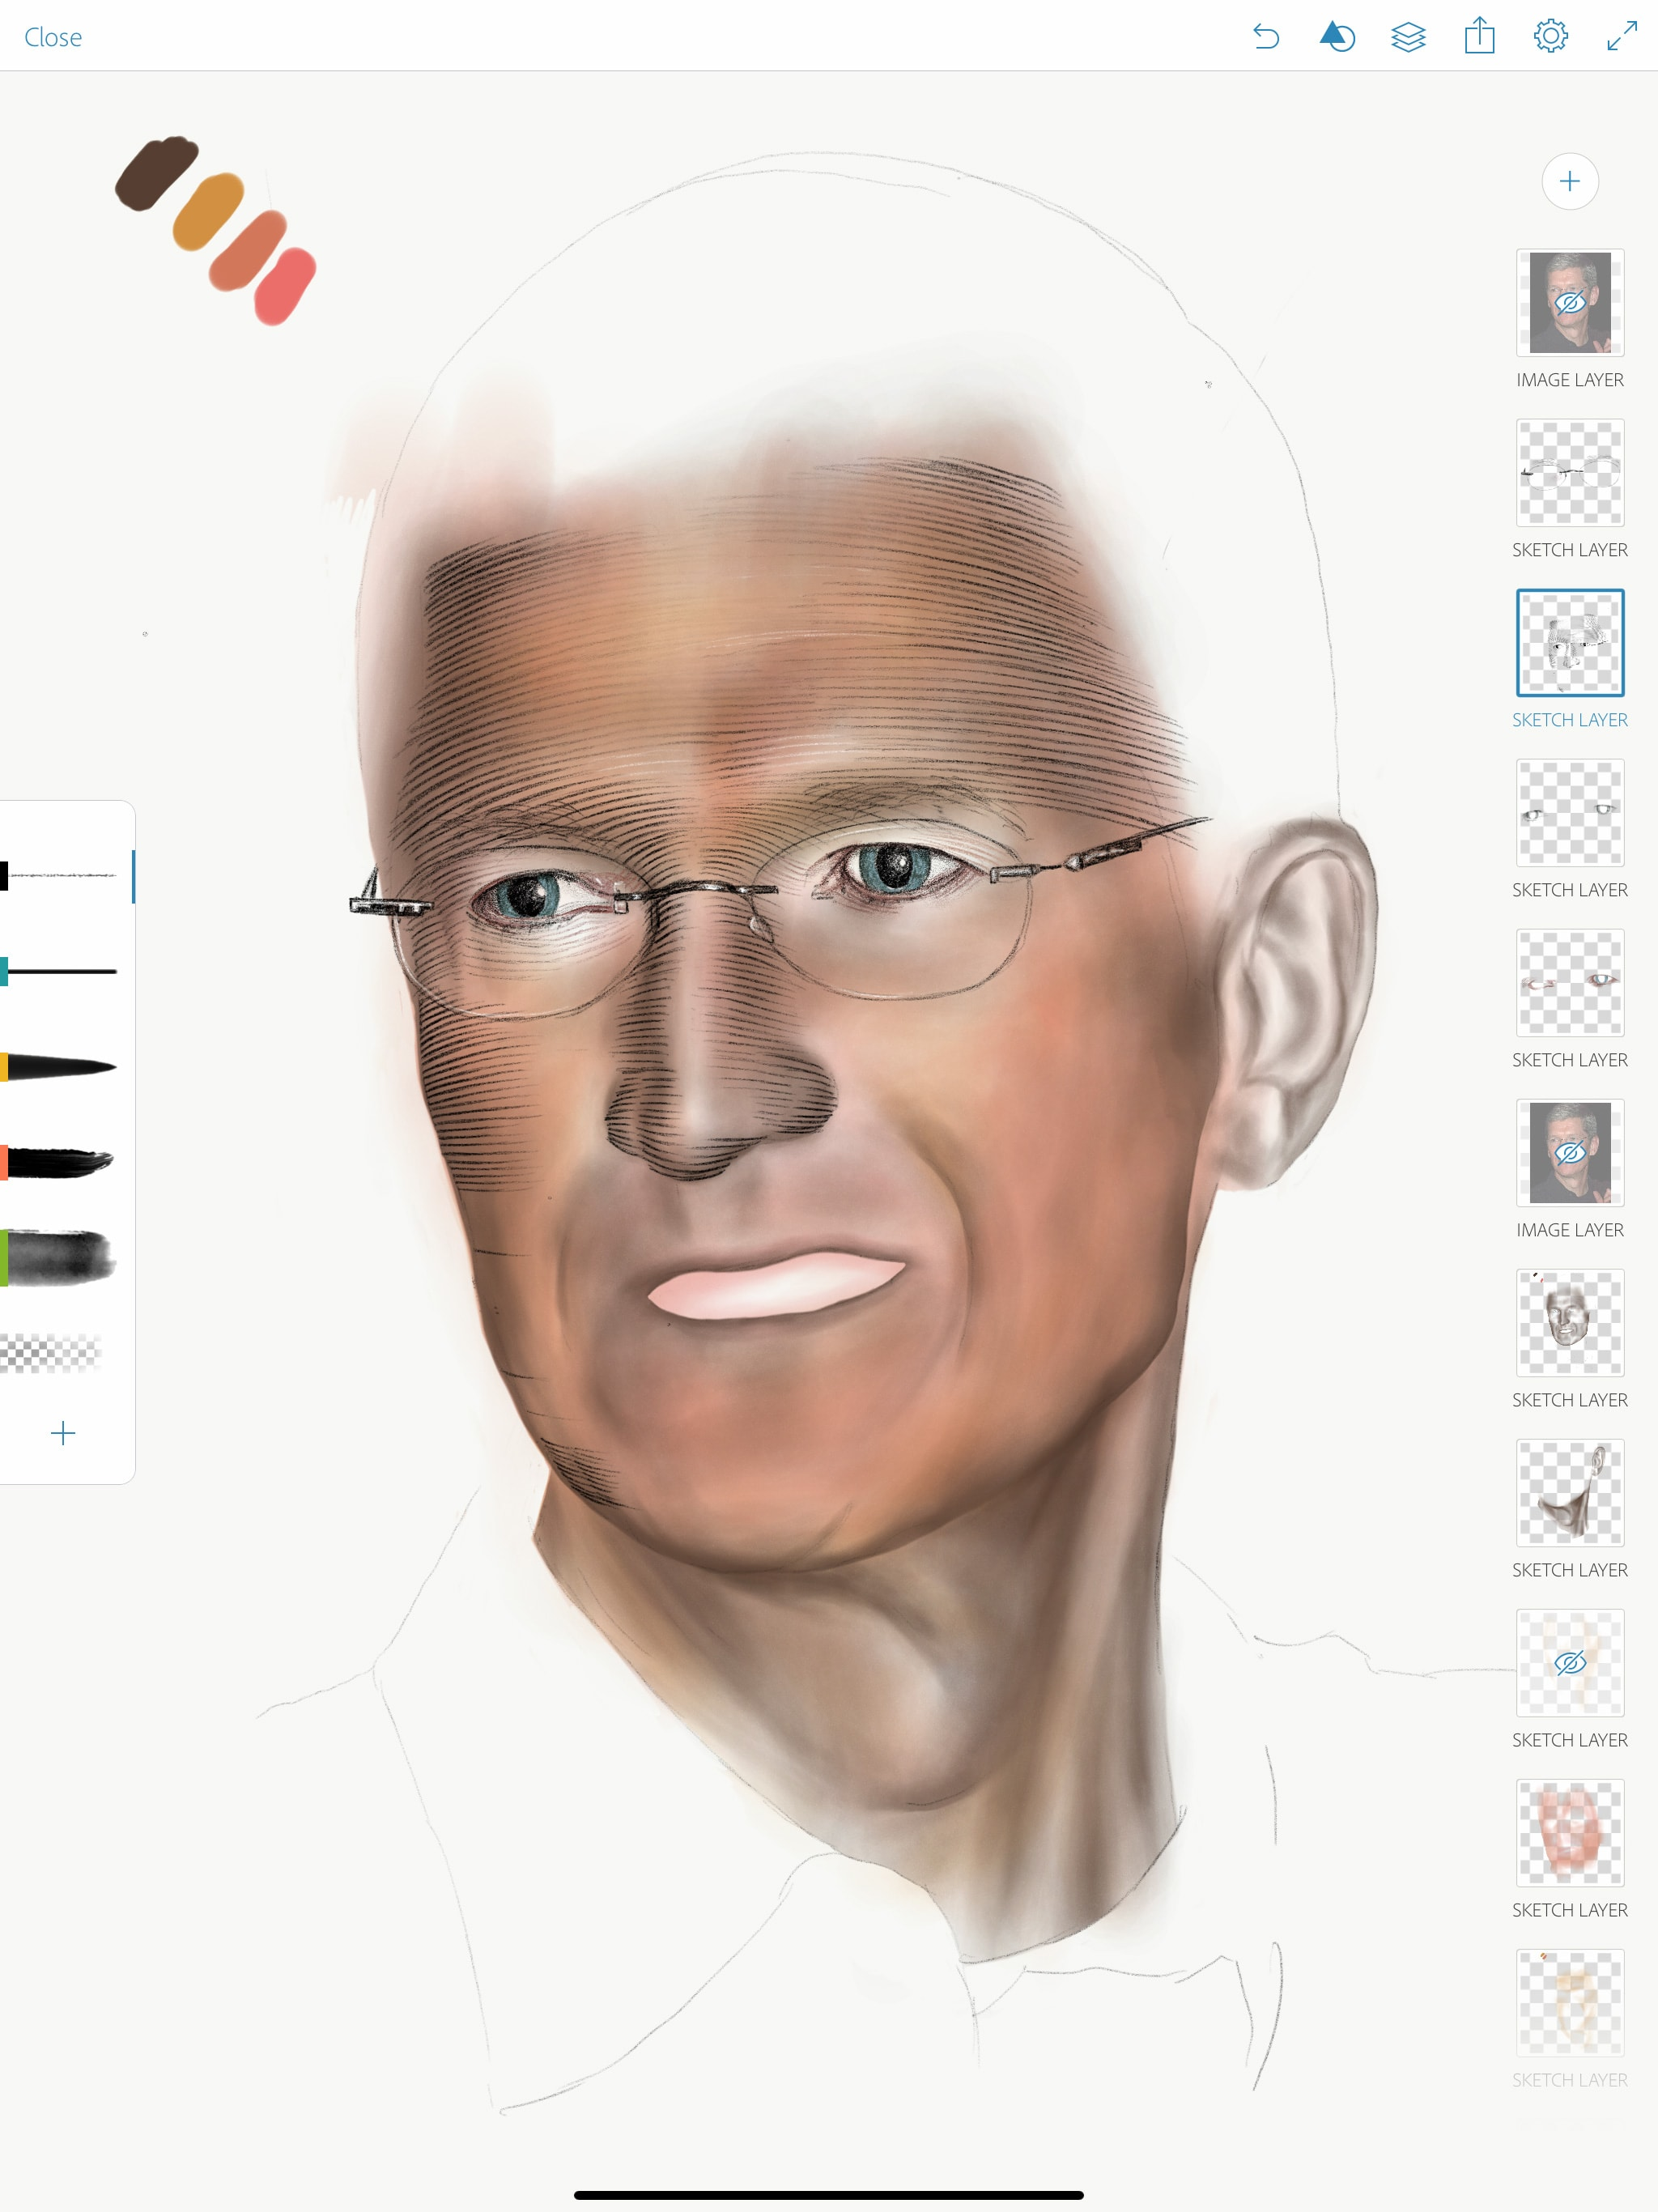 Dibujo de retratos con Apple PenciL: Paso 4: Agregue los detalles